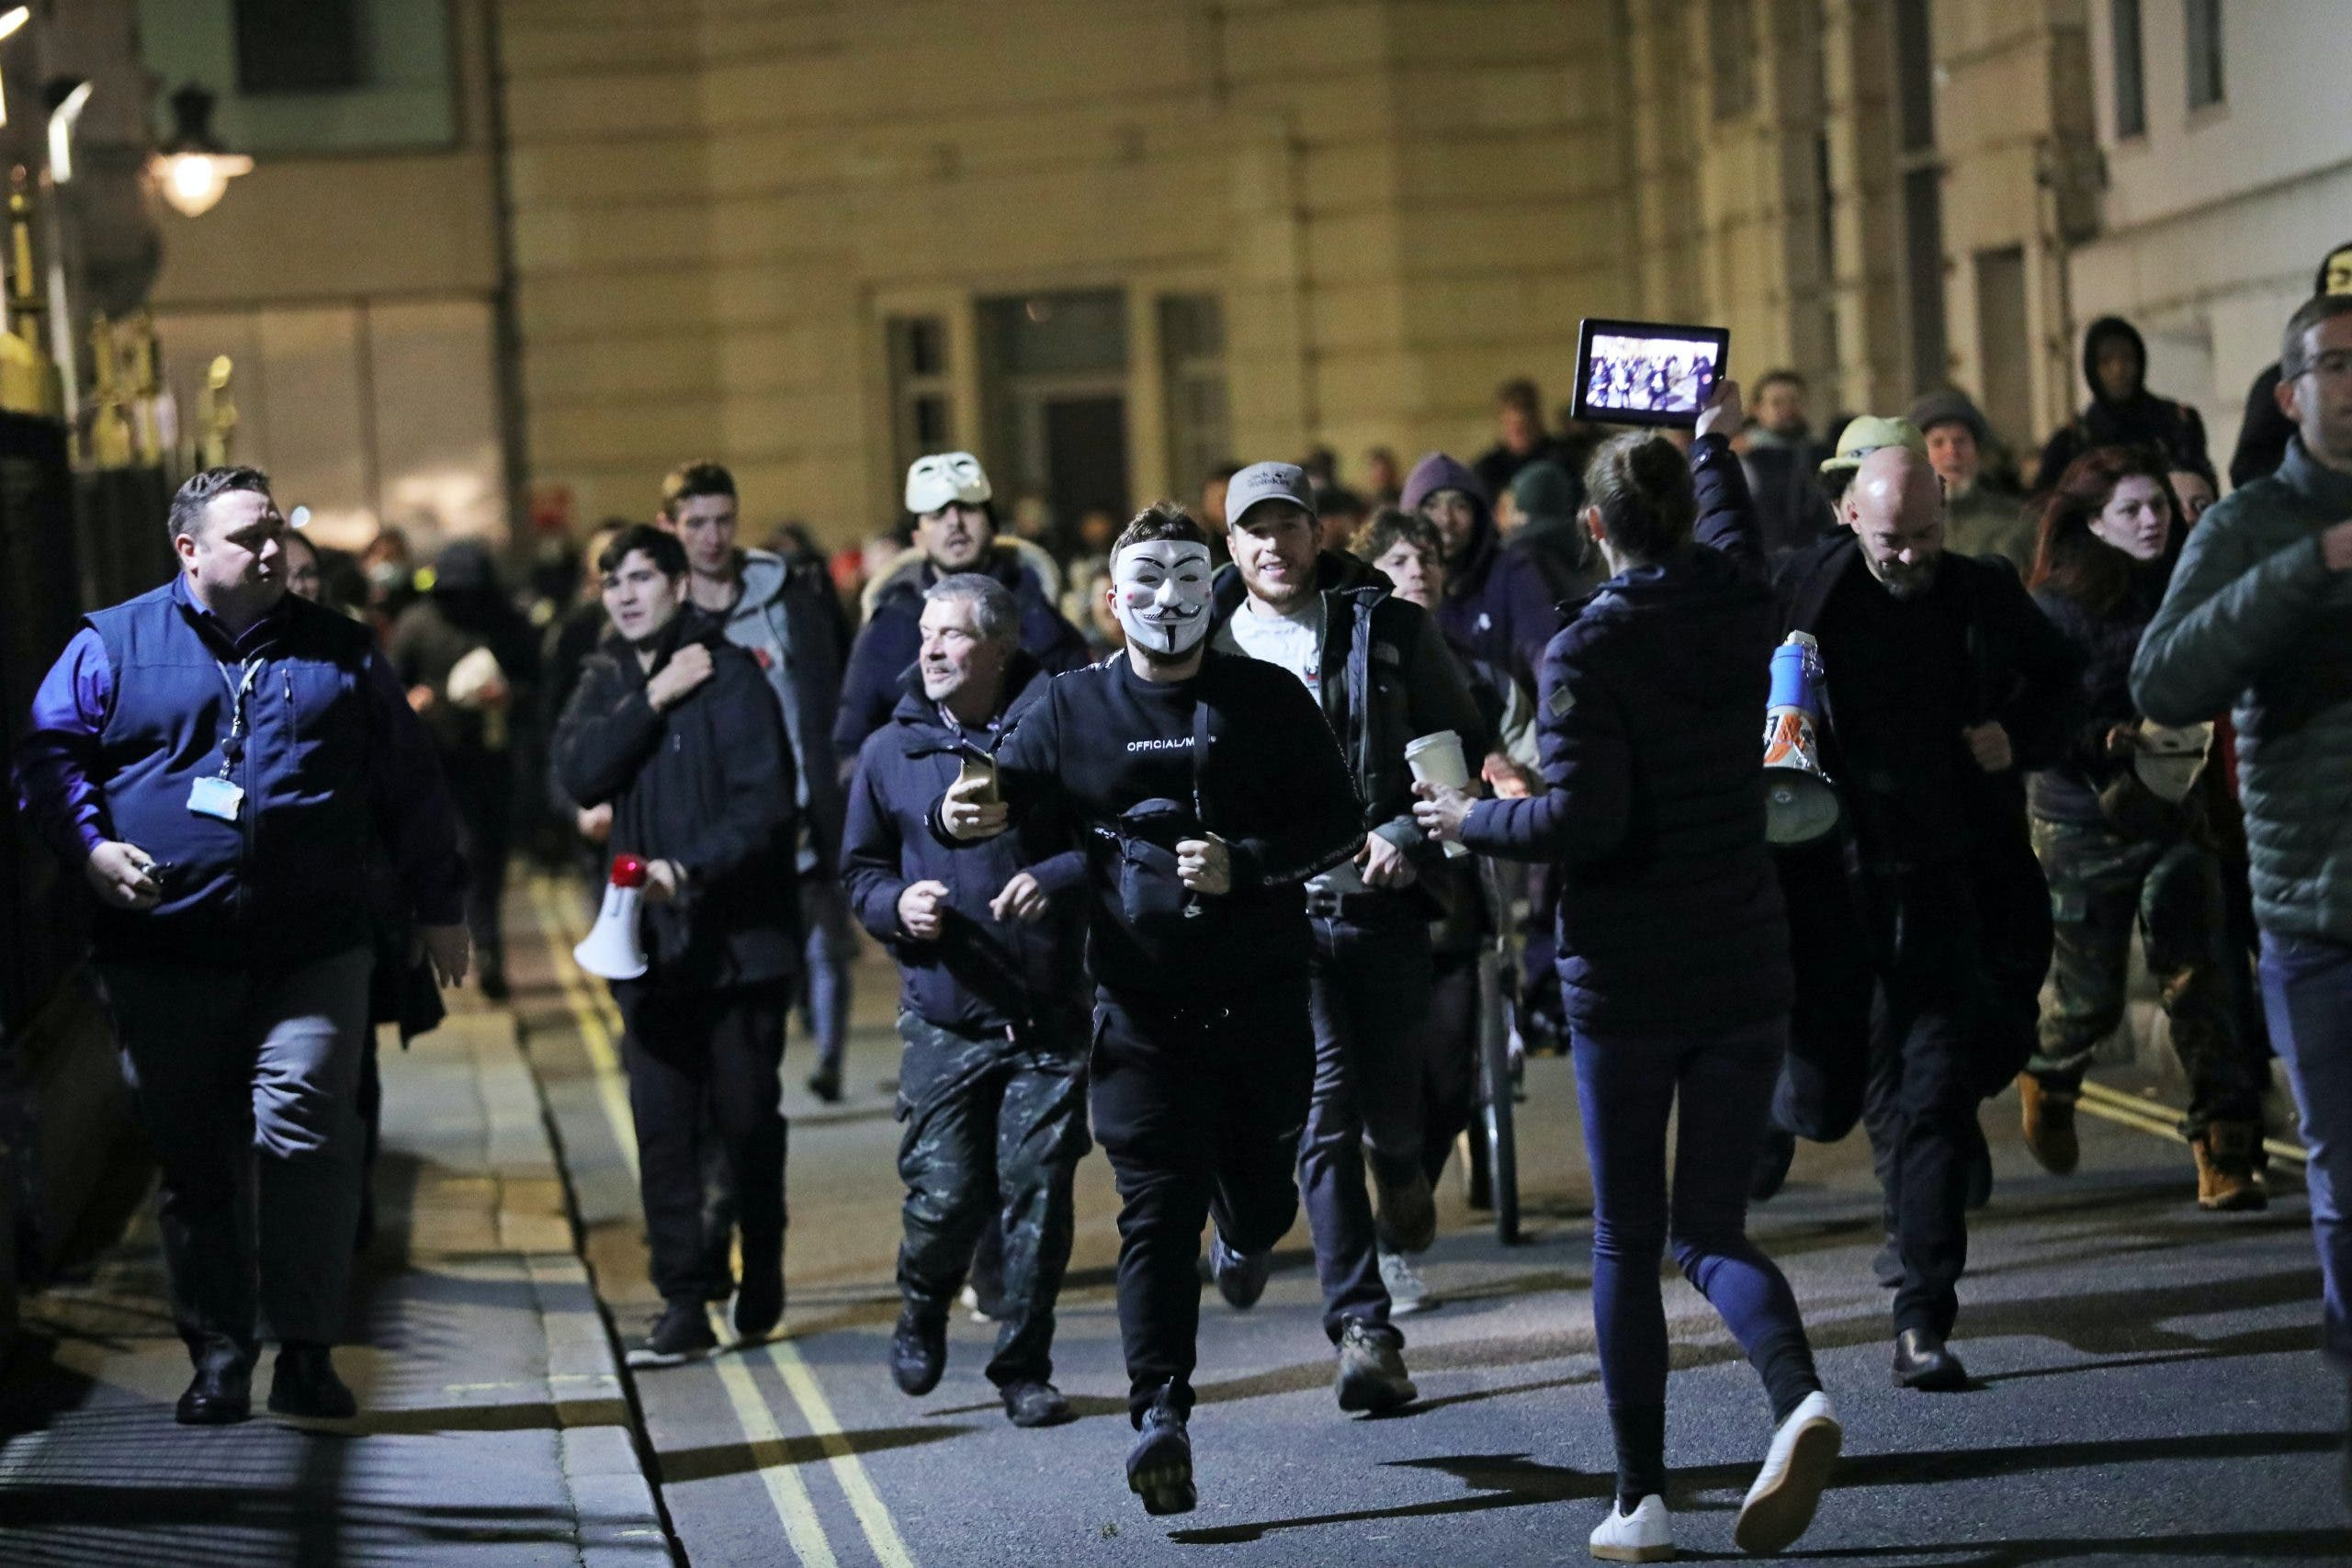 Met apologises over journalists threatened with arrest while covering protest